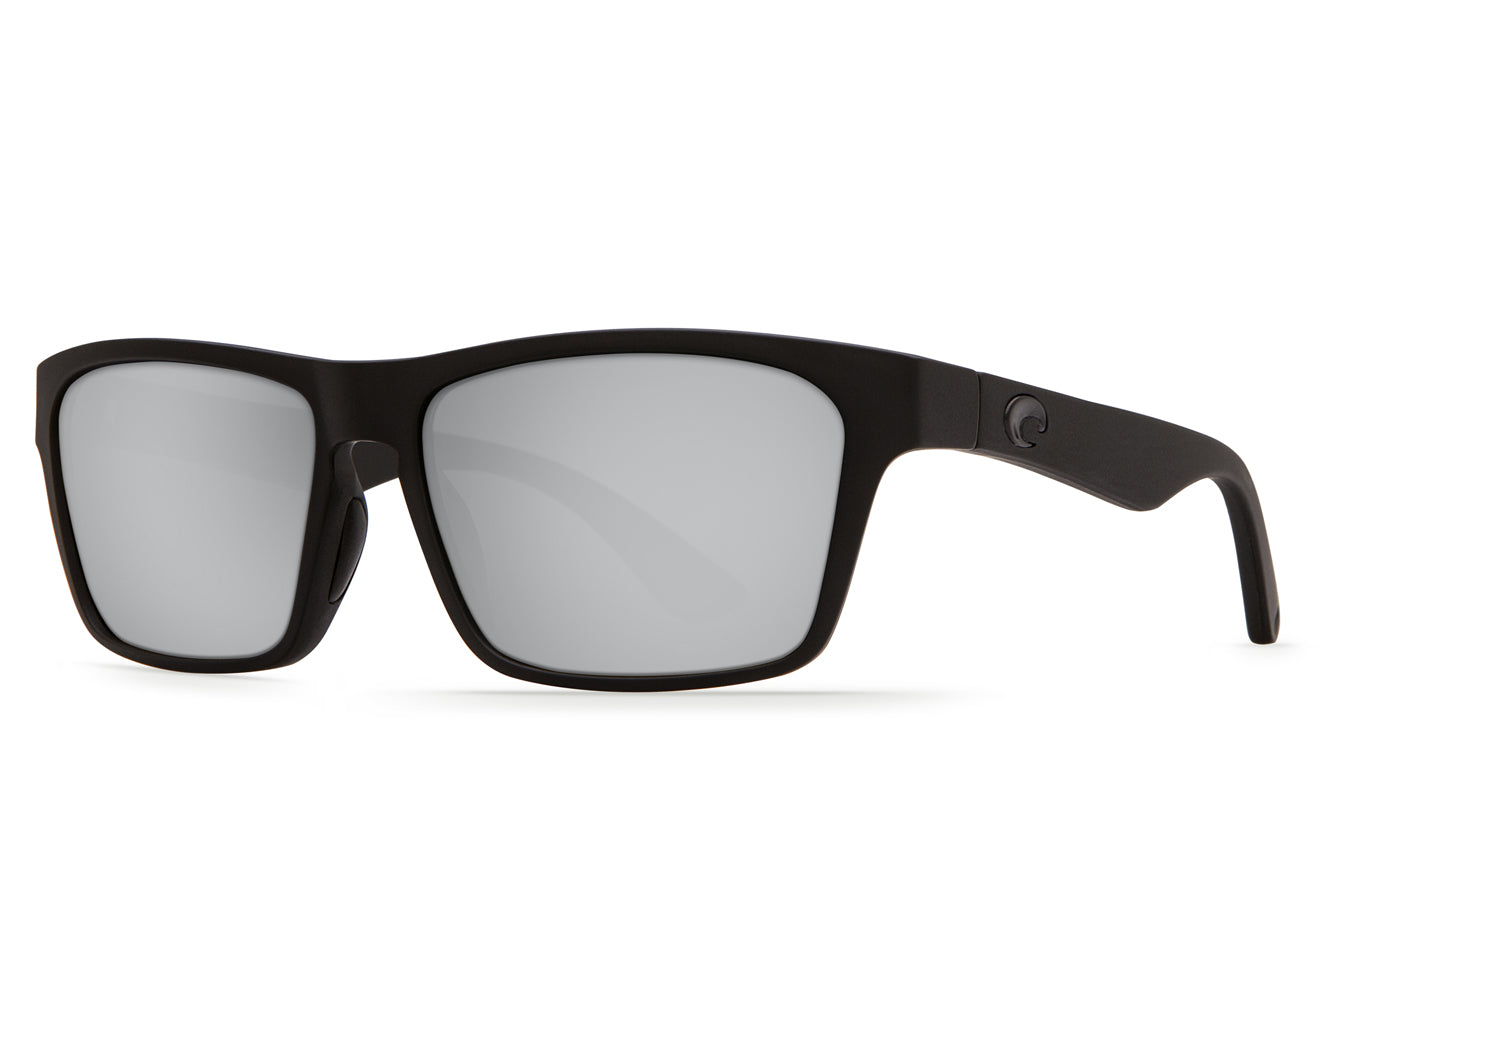 Costa Hinano Prescription Sunglasses